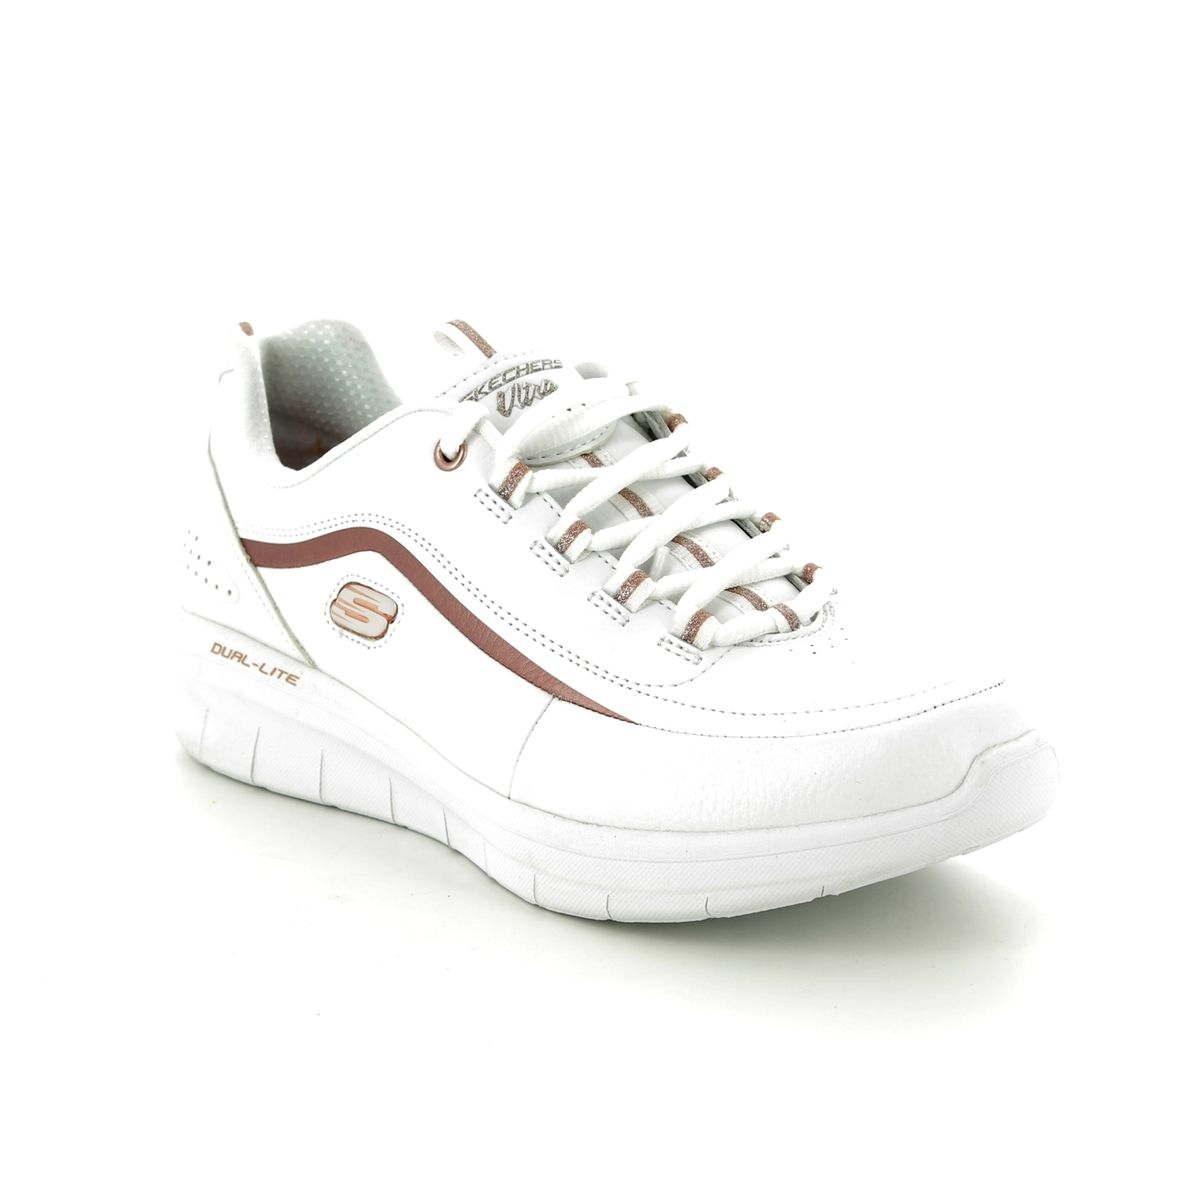 a4778e790717 Skechers Synergy 2 Meta 12933 WTRG White - rose gold trainers